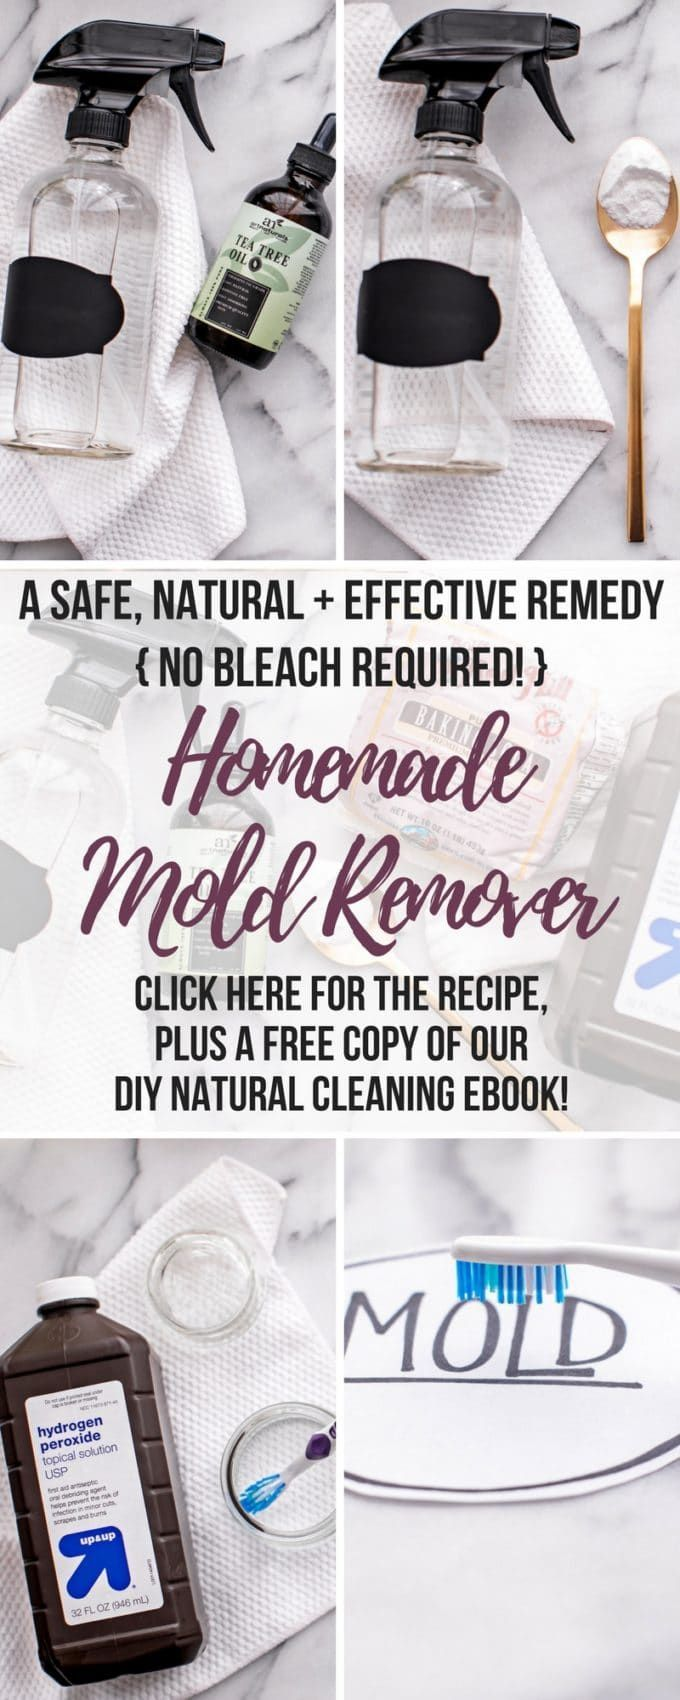 Diy mold remover recipe cleaners diy mold remover - How to clean mold off bathroom ceiling ...